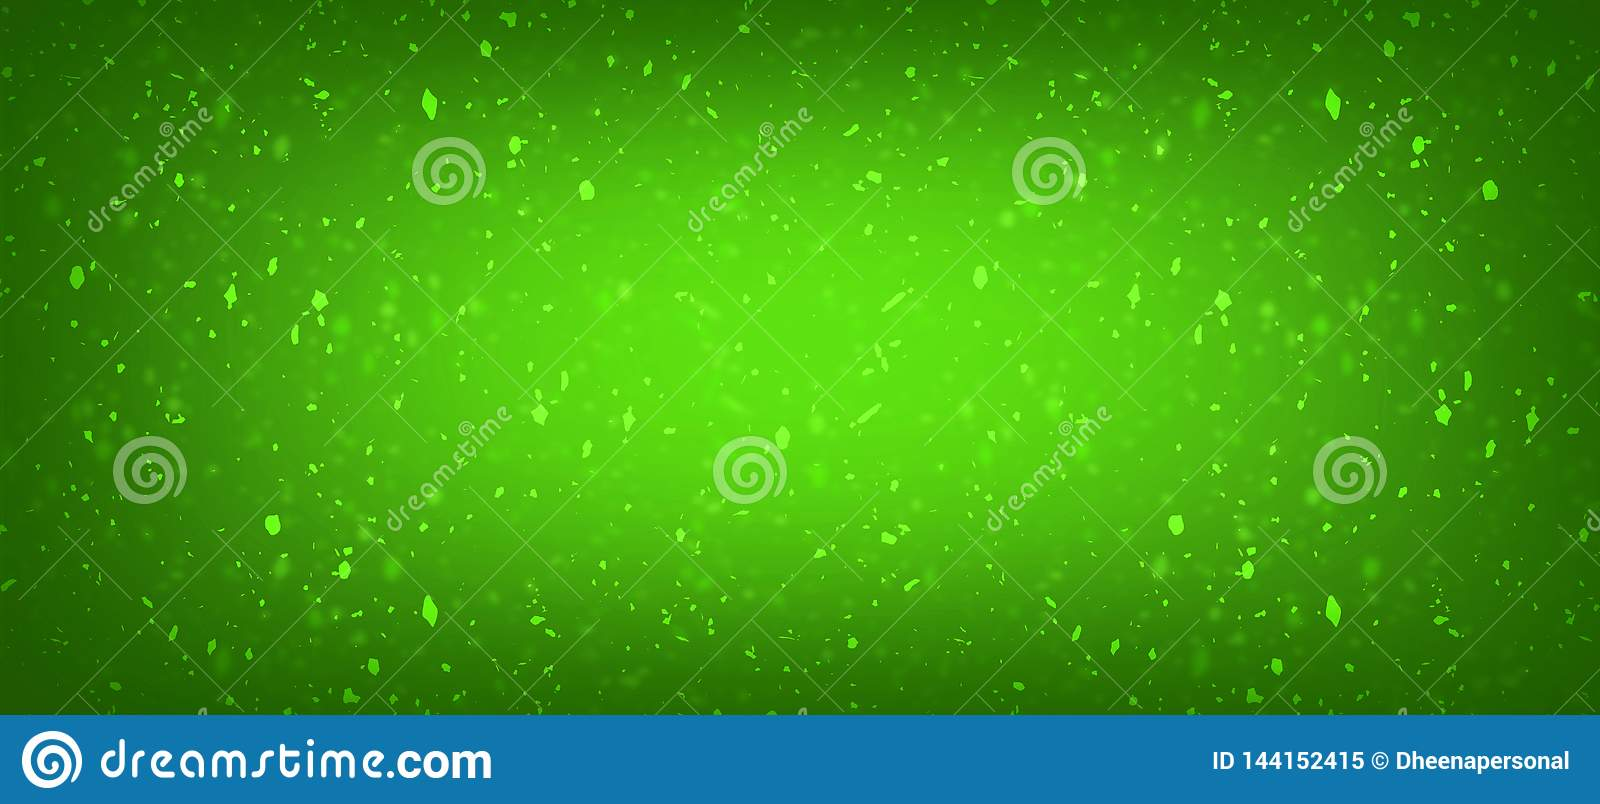 Abstract green background Green  luxury rich vintage grunge background texture design with elegant antique paint on wall illust